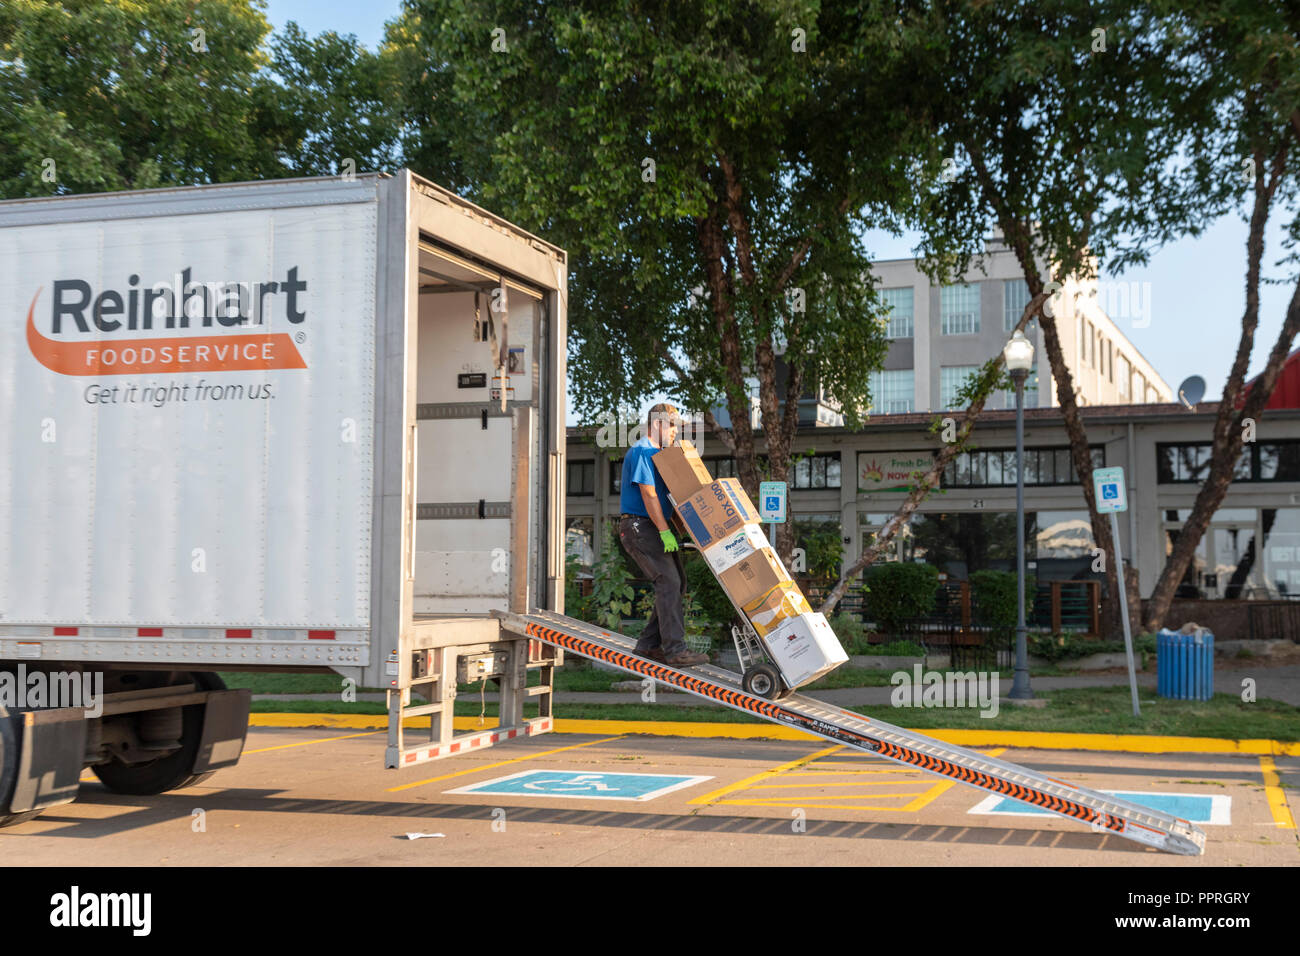 Davenport, Iowa - A worker for Reinhart Foodservice delivers food to a restaurant. - Stock Image